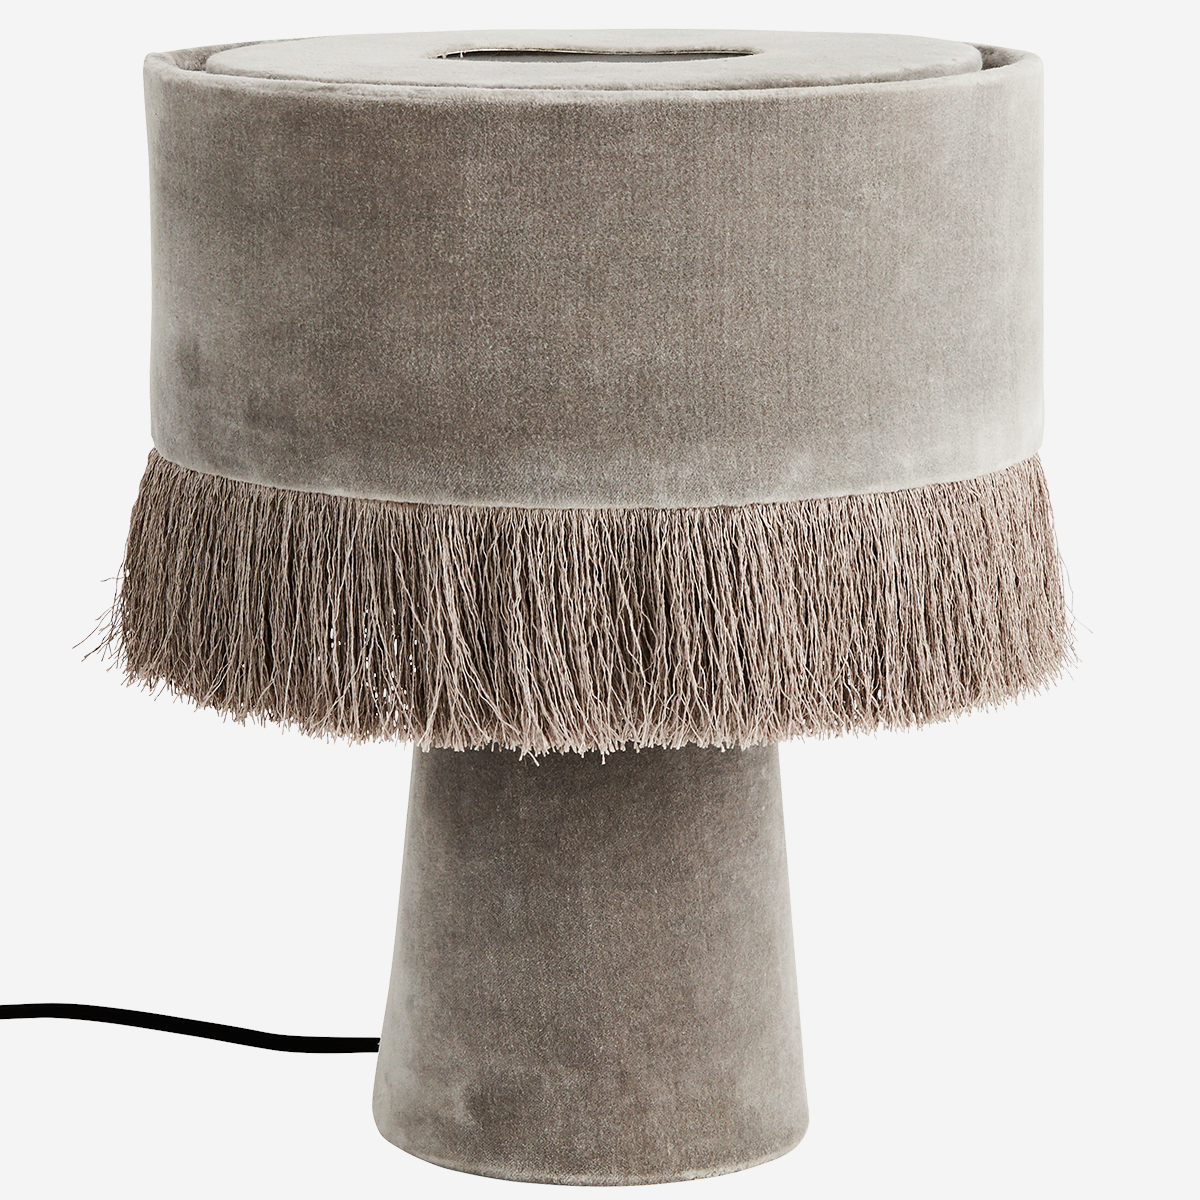 Velvet Table Lamp Grey - Madam Stoltz